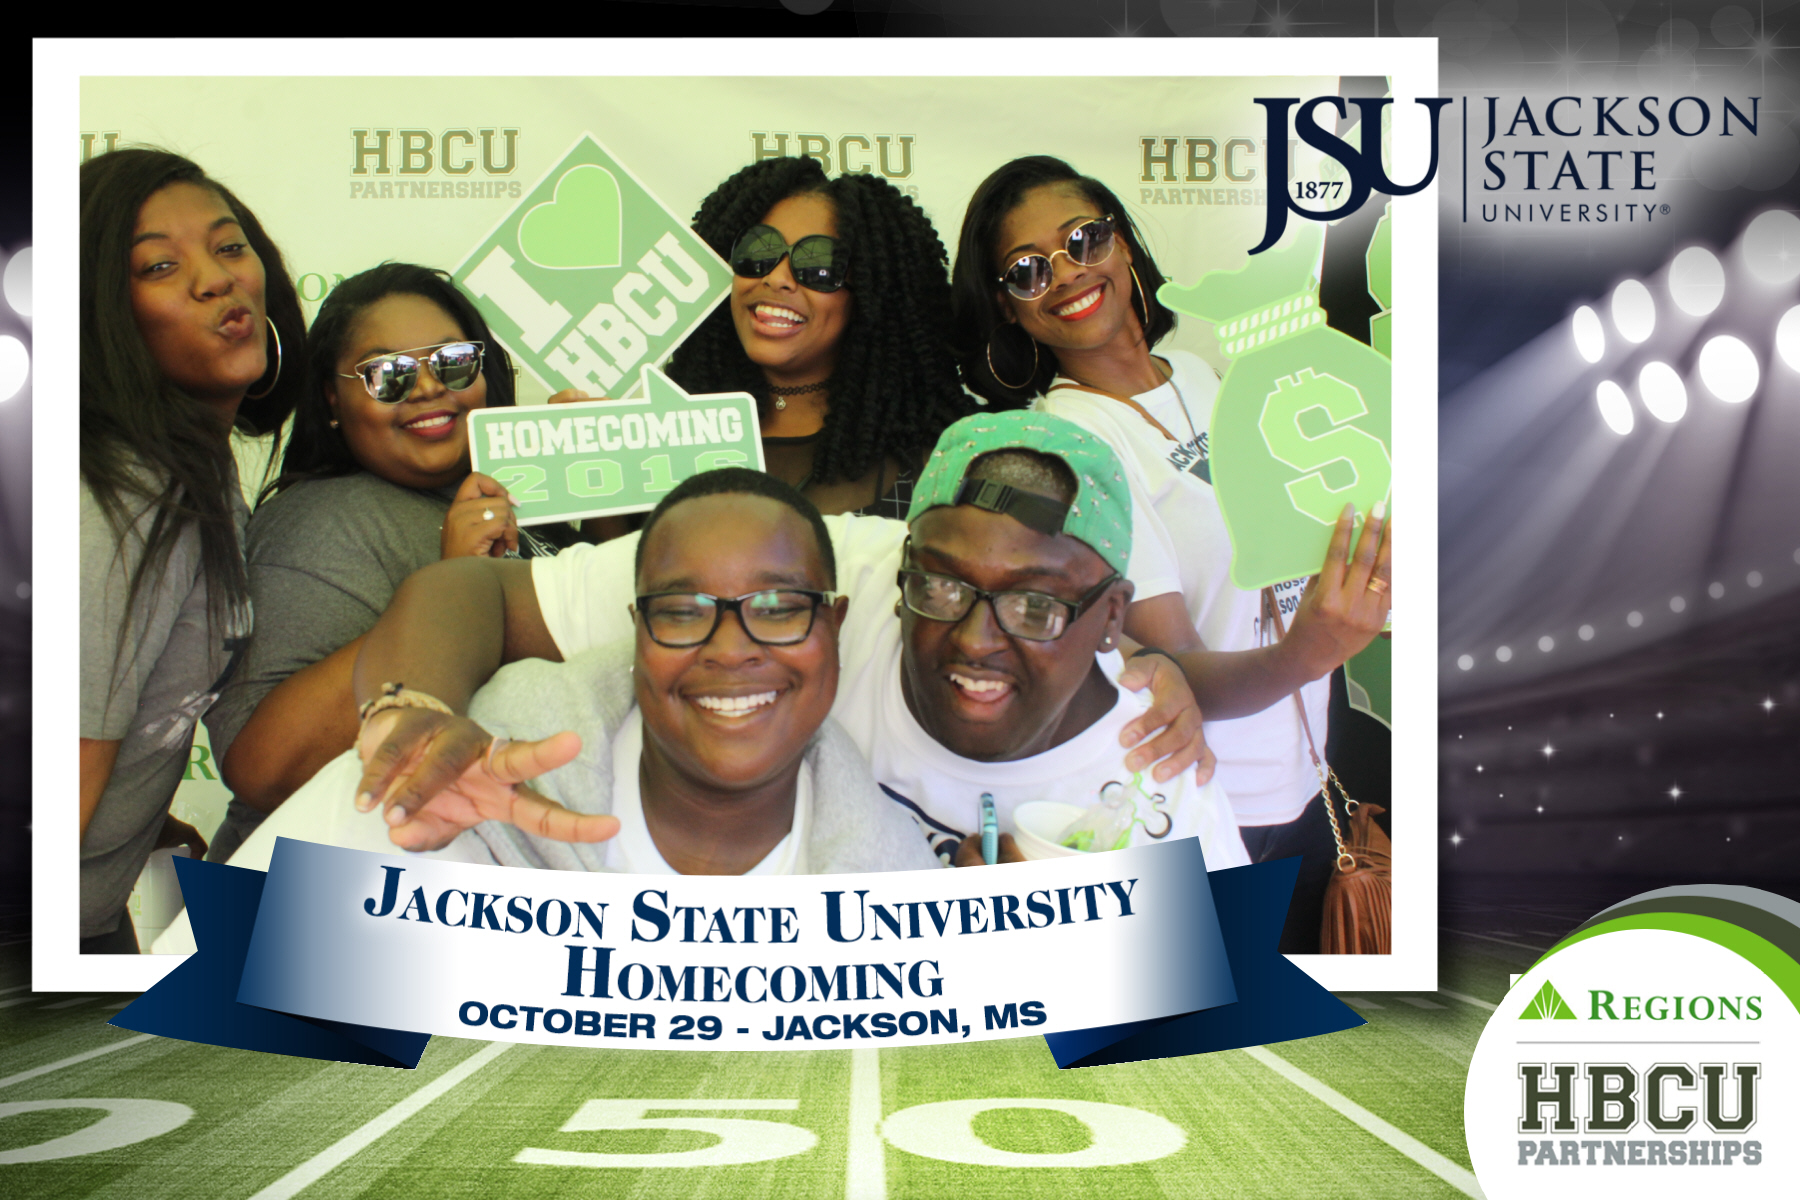 Regions - JSU Homecoming